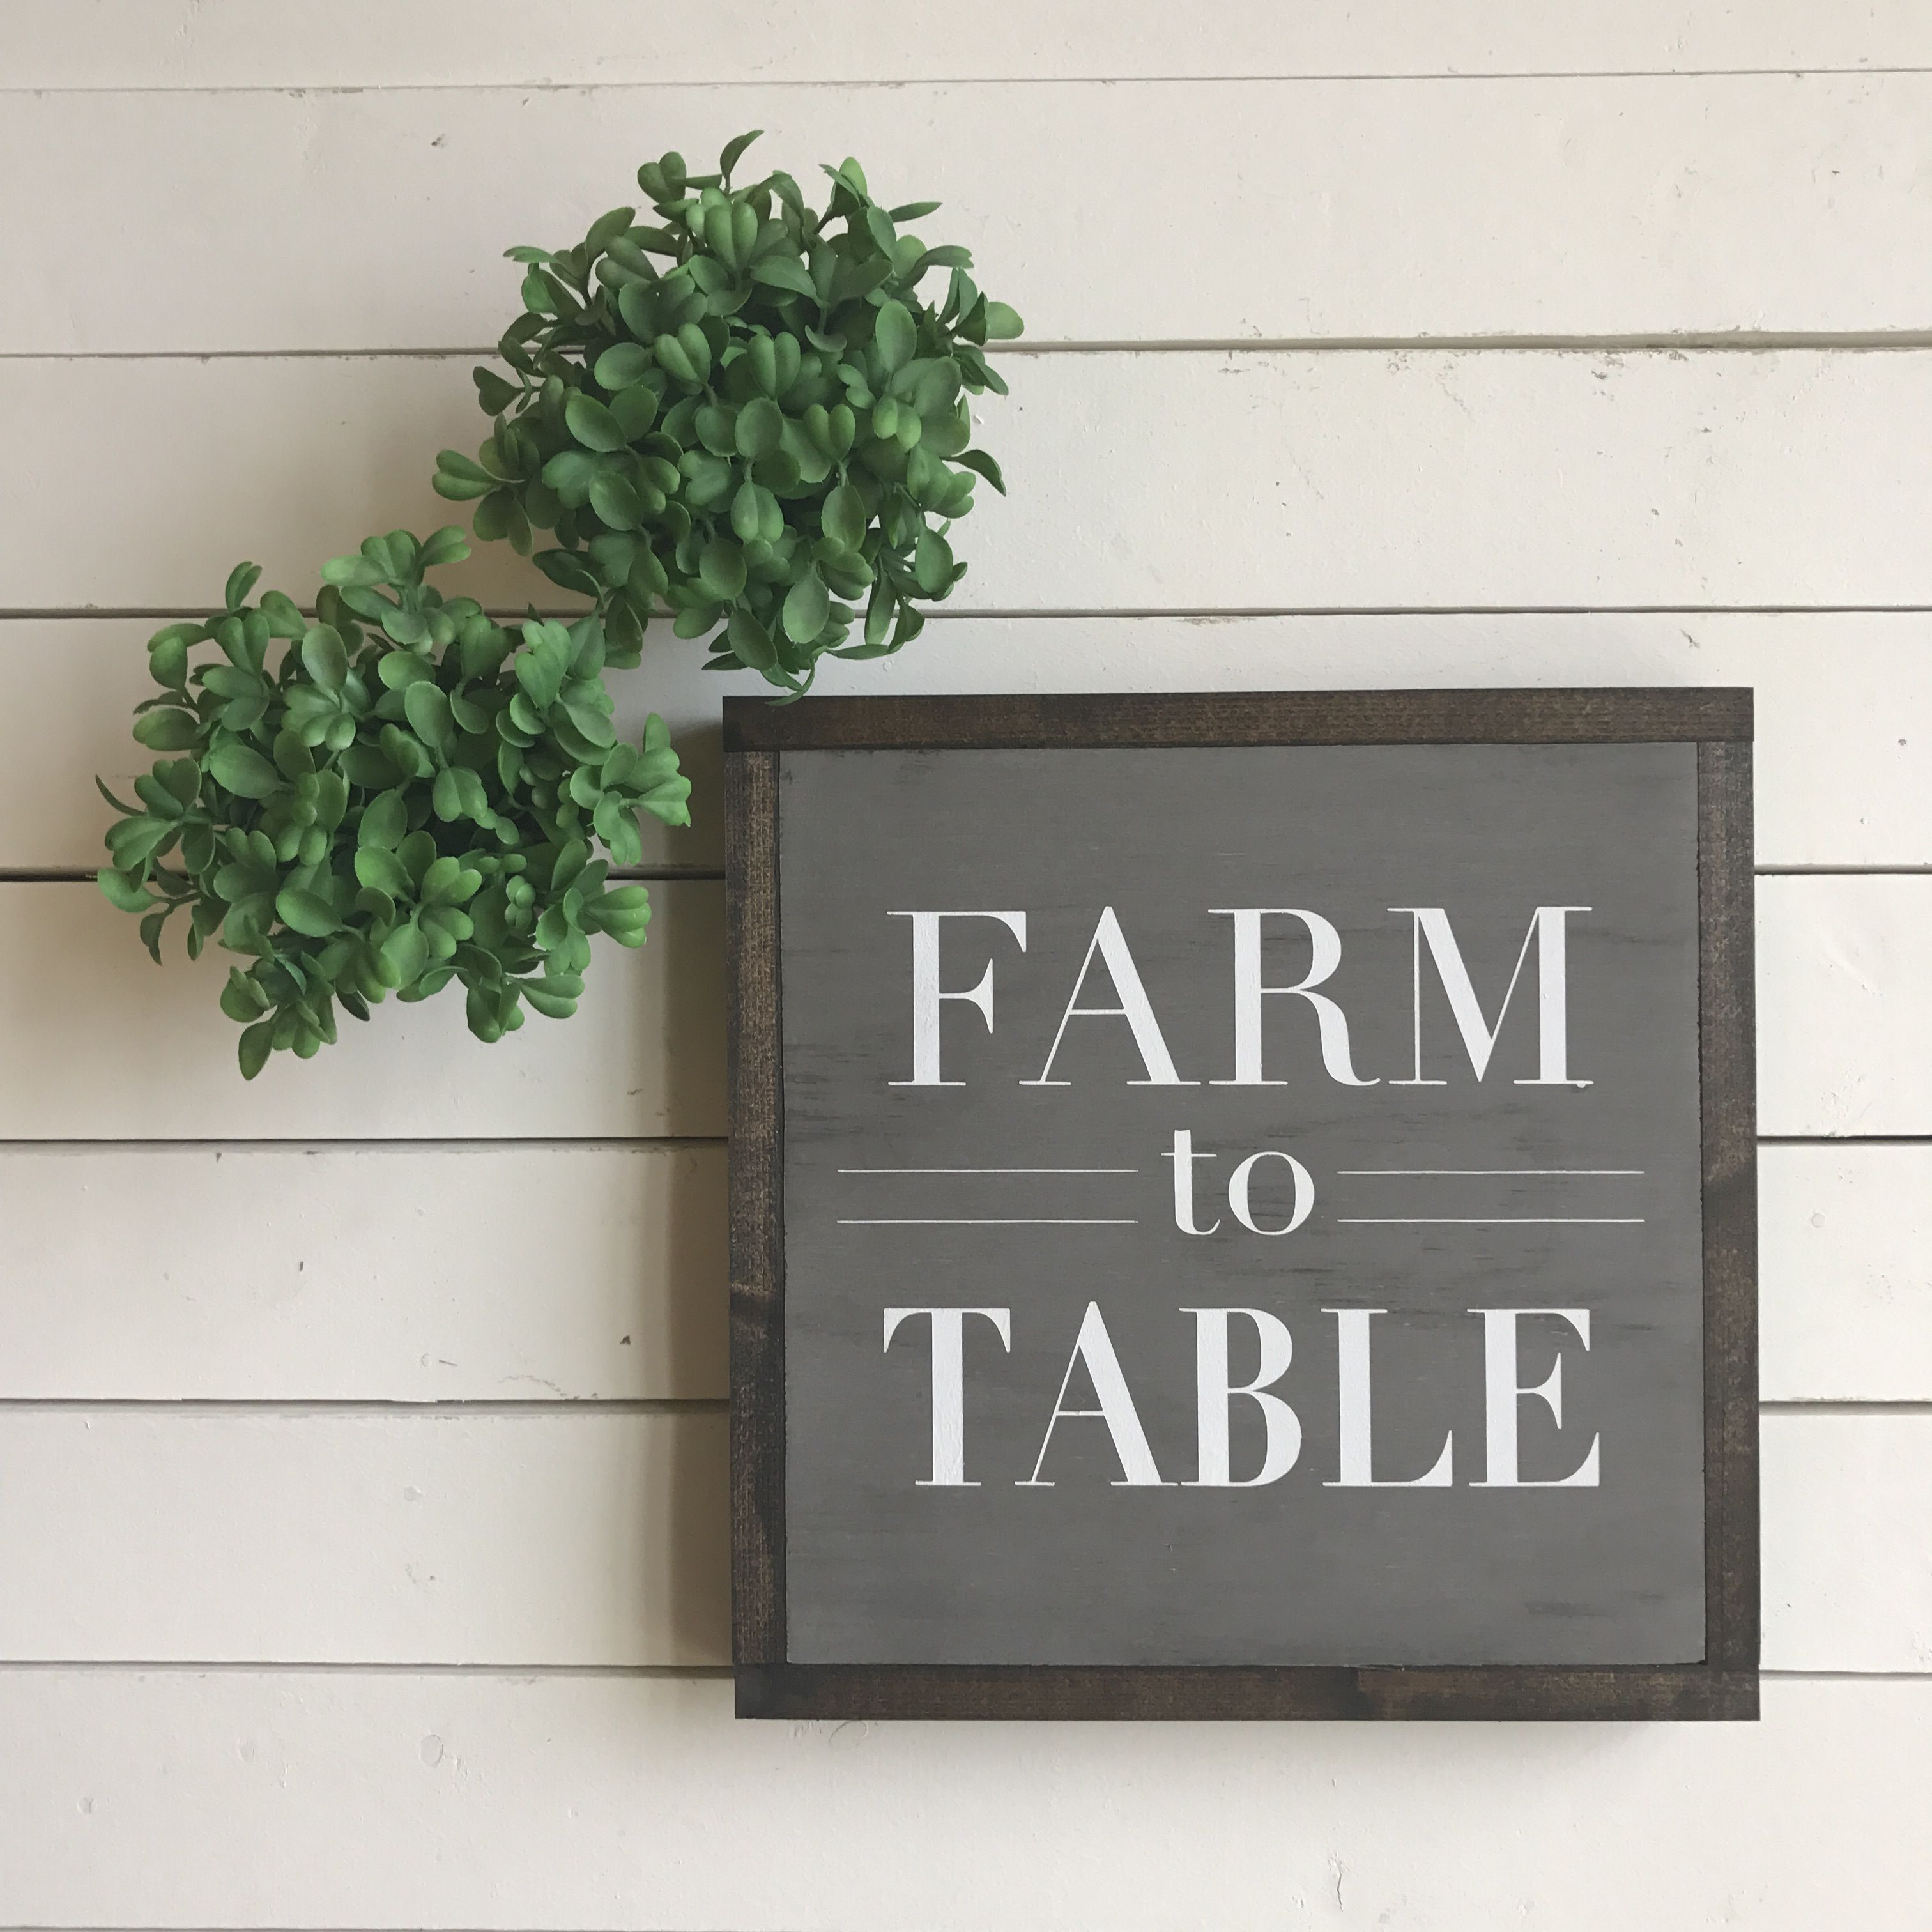 Farm to Table is one of our most popular